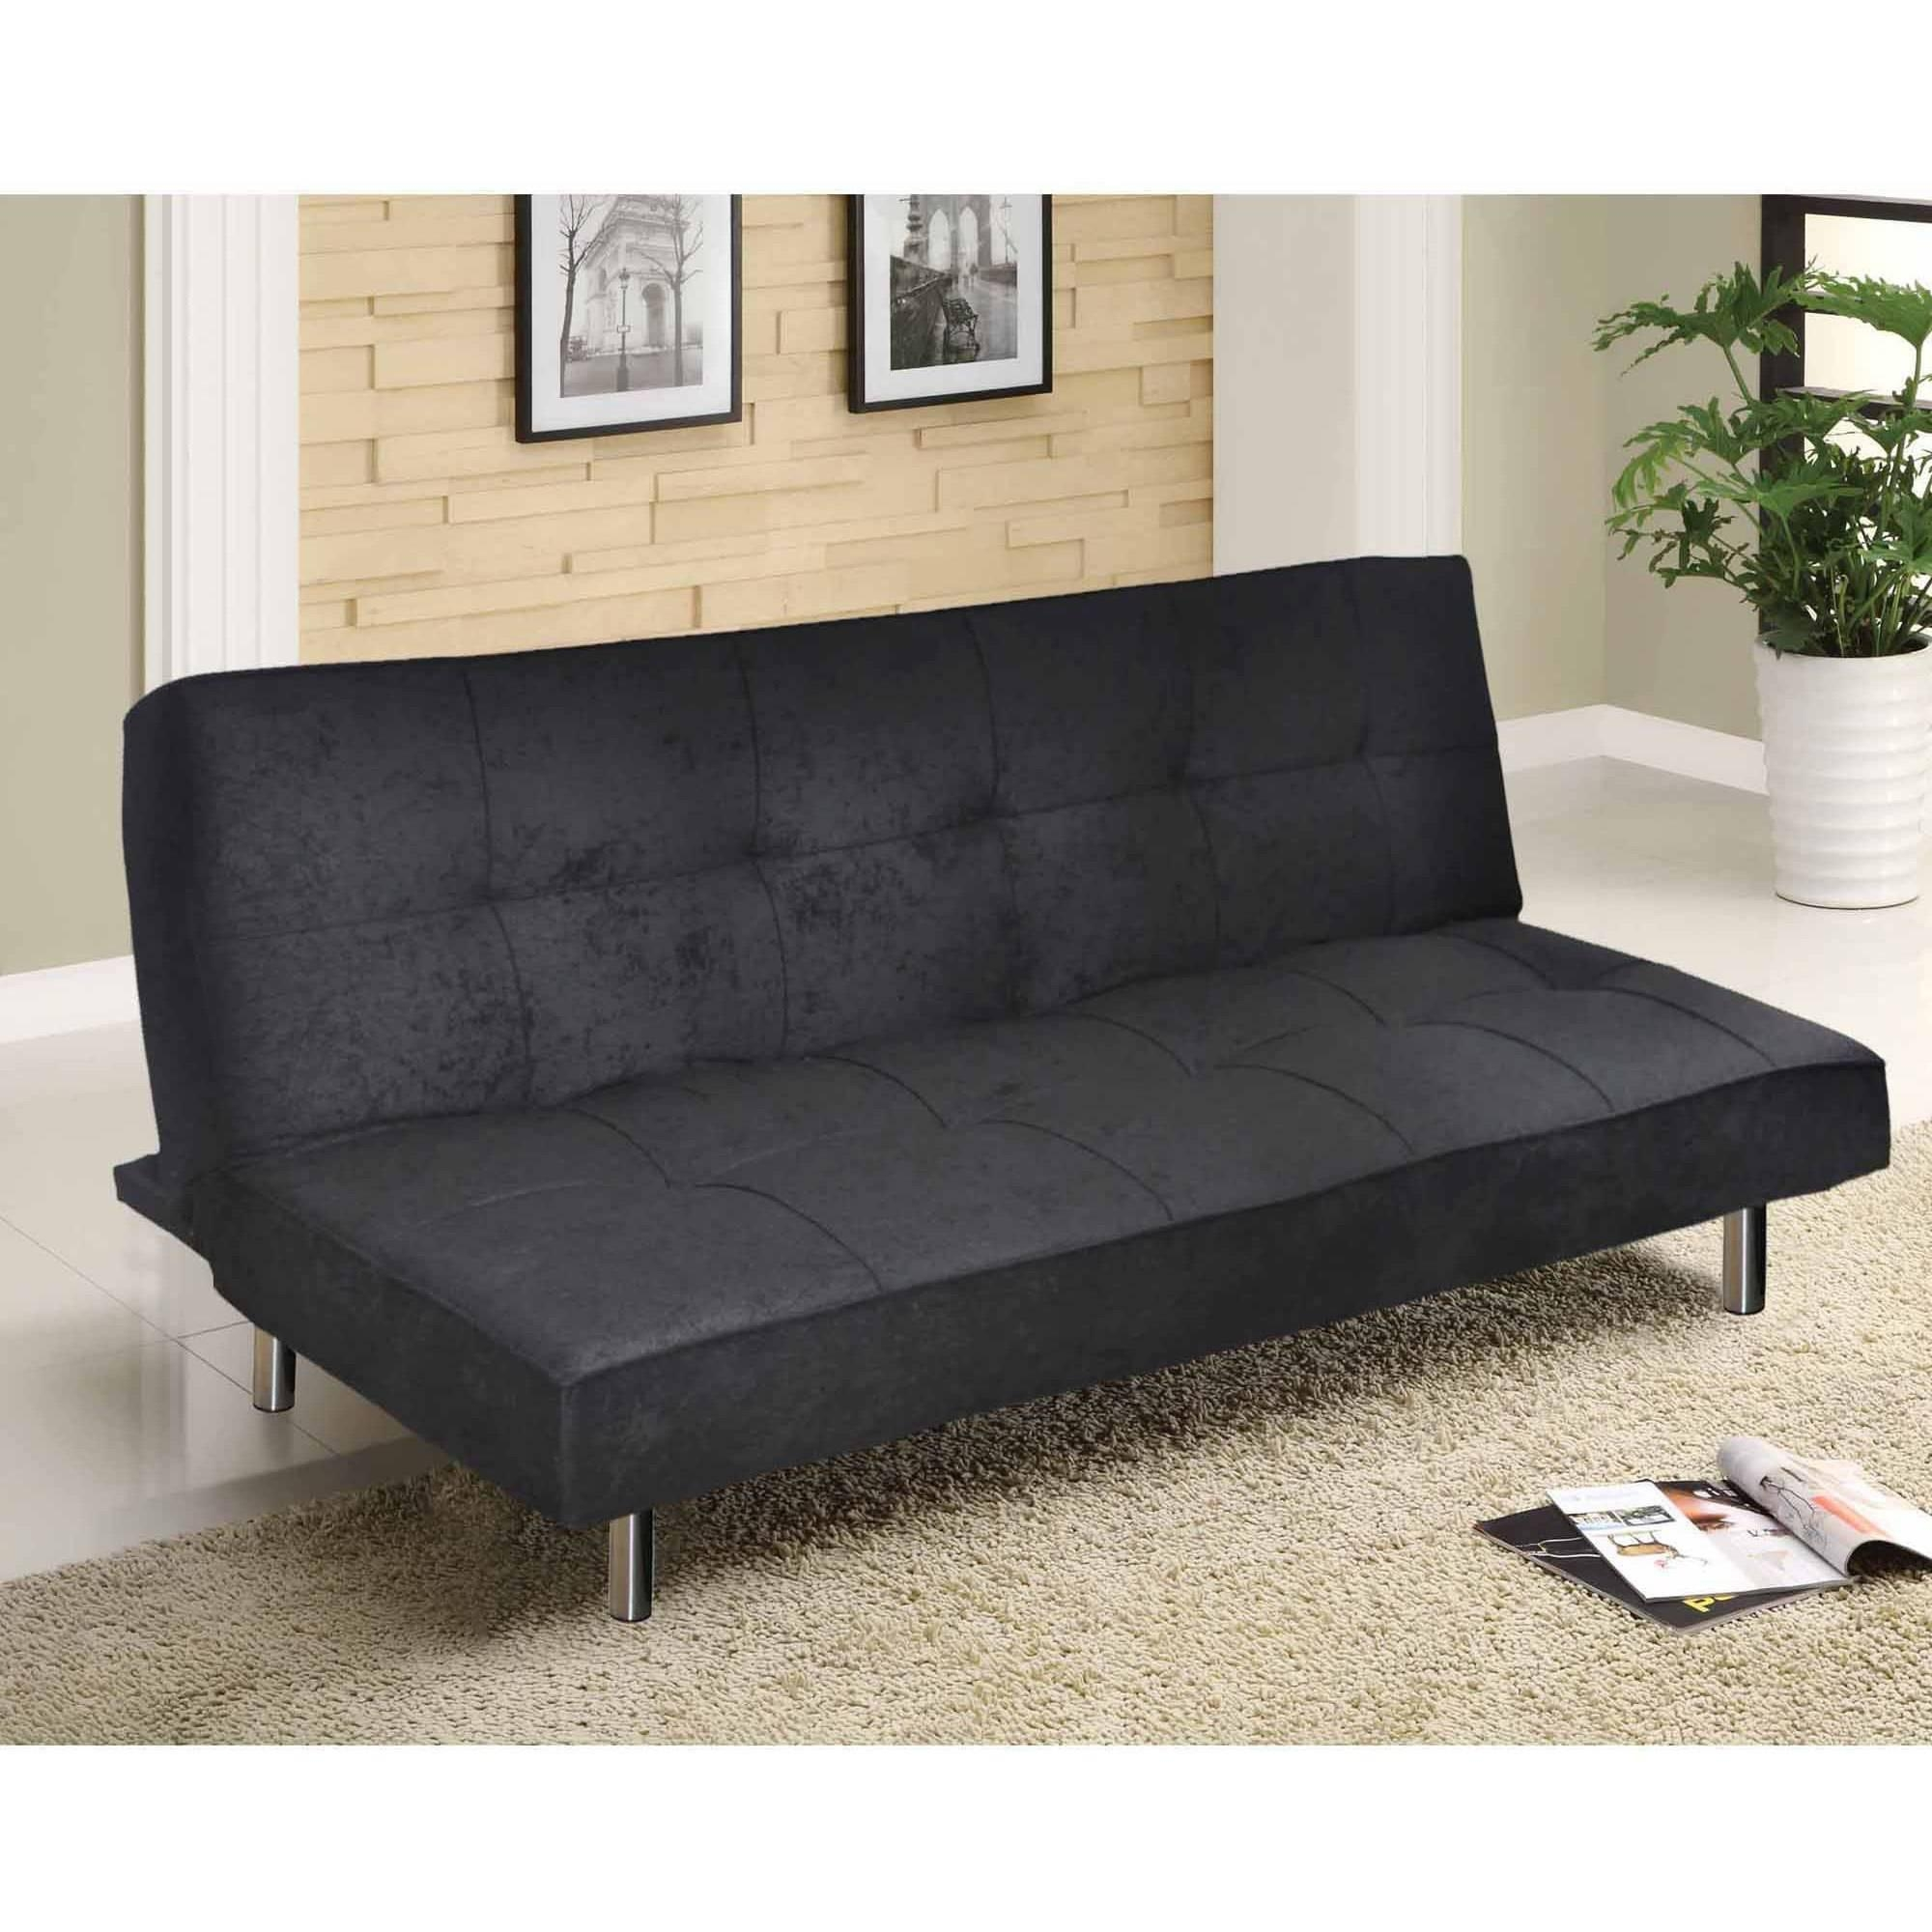 20 Choices Of Futon Couch Beds Sofa Ideas